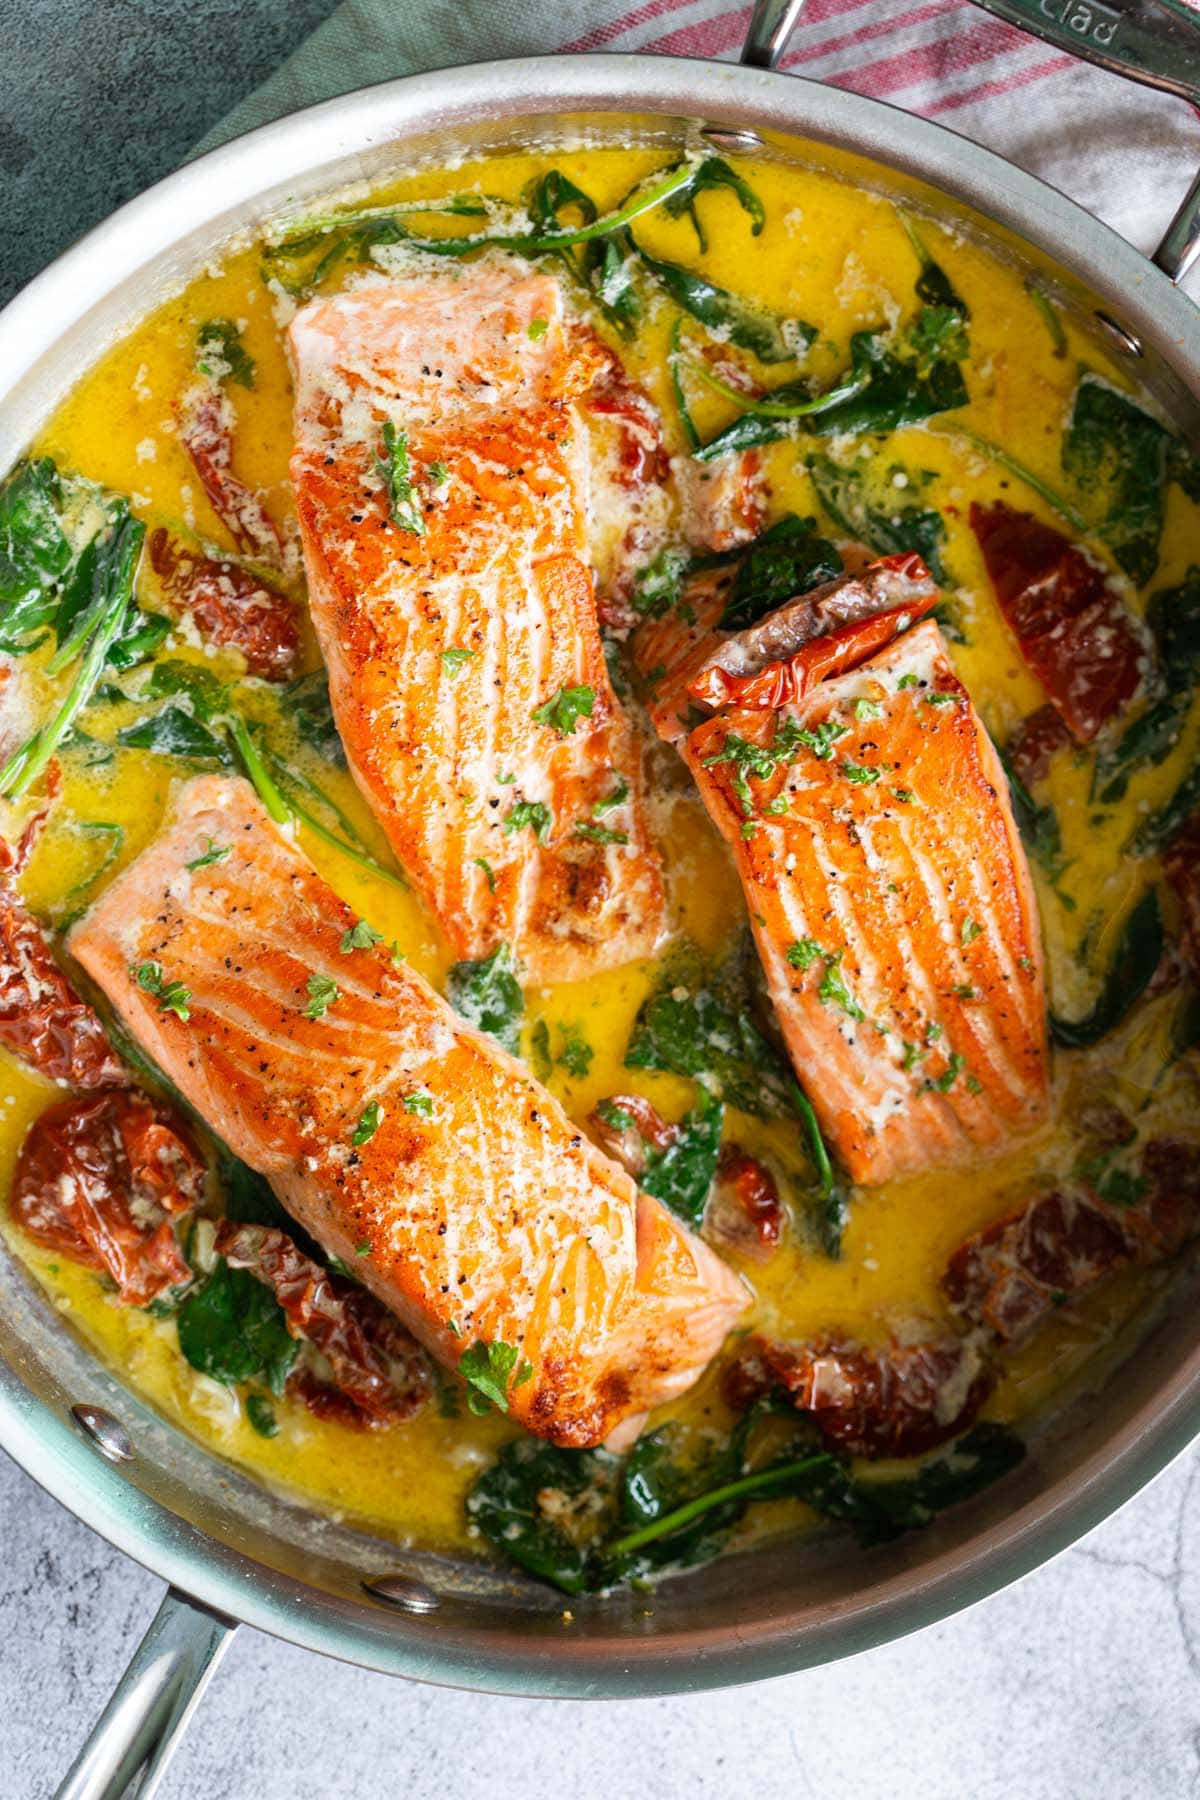 Tuscan salmon recipe with spinach, garlic, butter and sun-dried tomatoes.